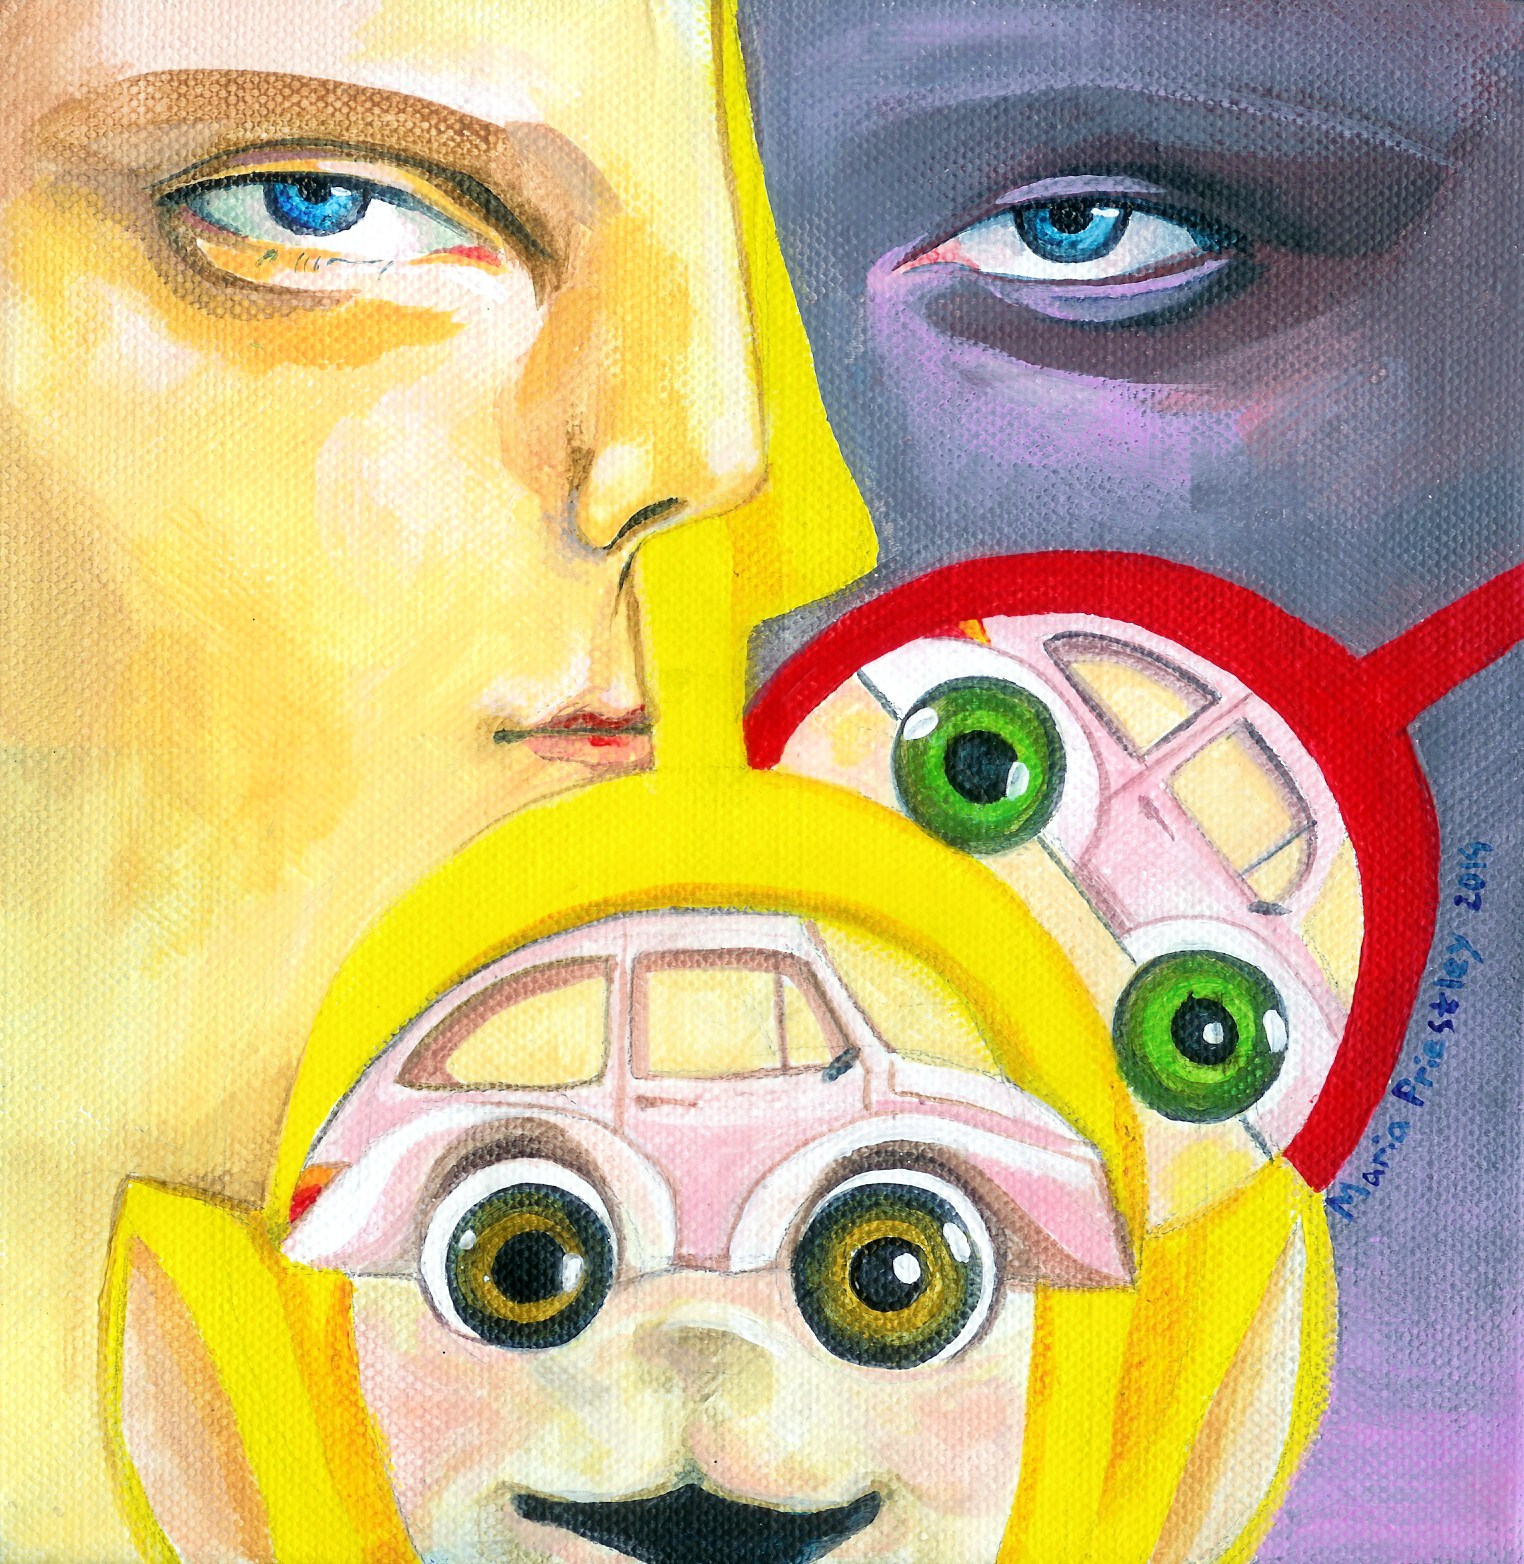 surreal painting teletubbies eyes faces cars